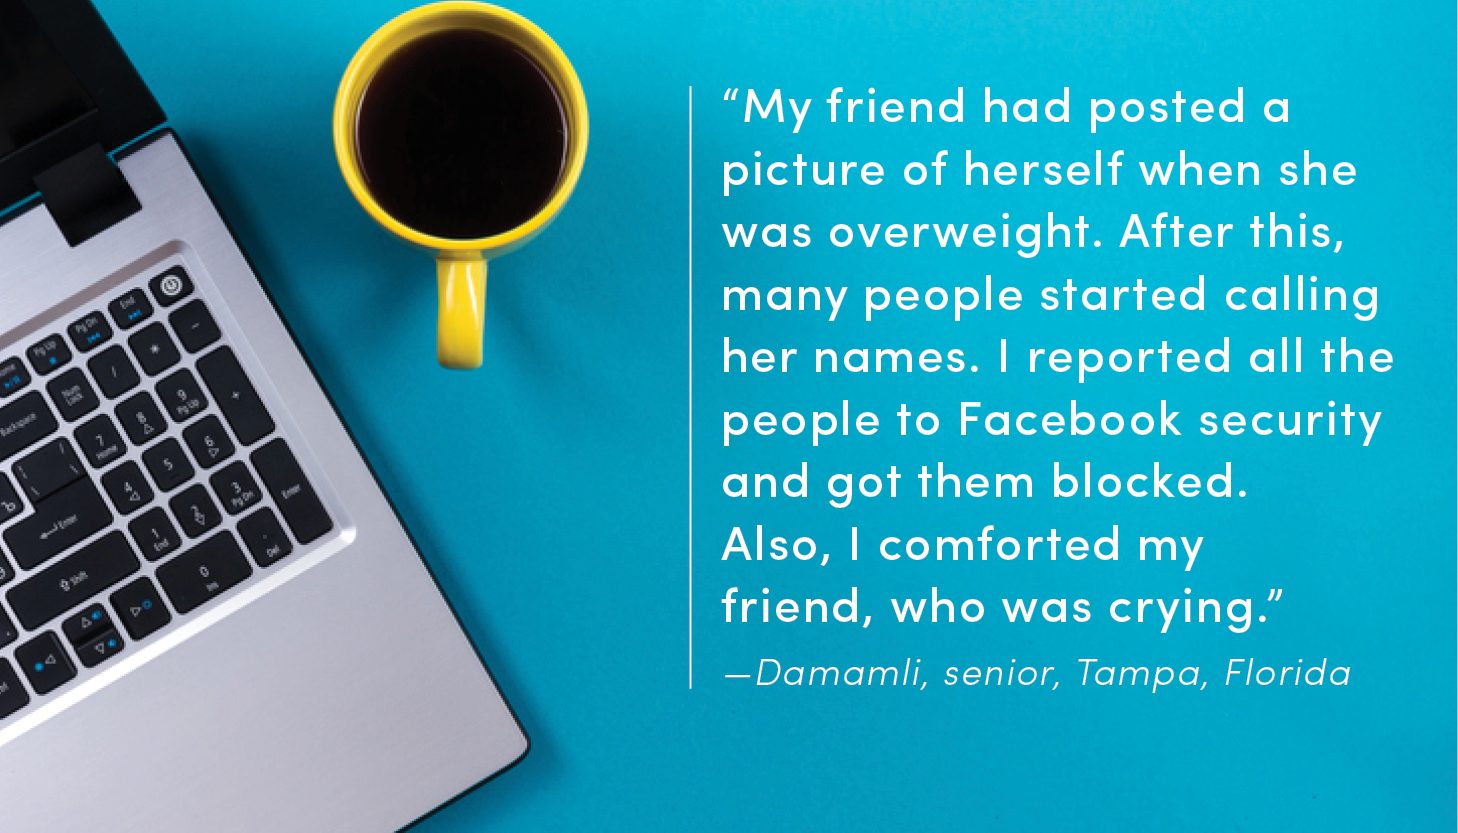 """My friend had posted a picture of herself when she was overweight. After this, many people started calling her names. I reported all the people to Facebook security and got them blocked. Also, I comforted my friend, who was crying."" —Damamli, senior, Tampa, Florida"